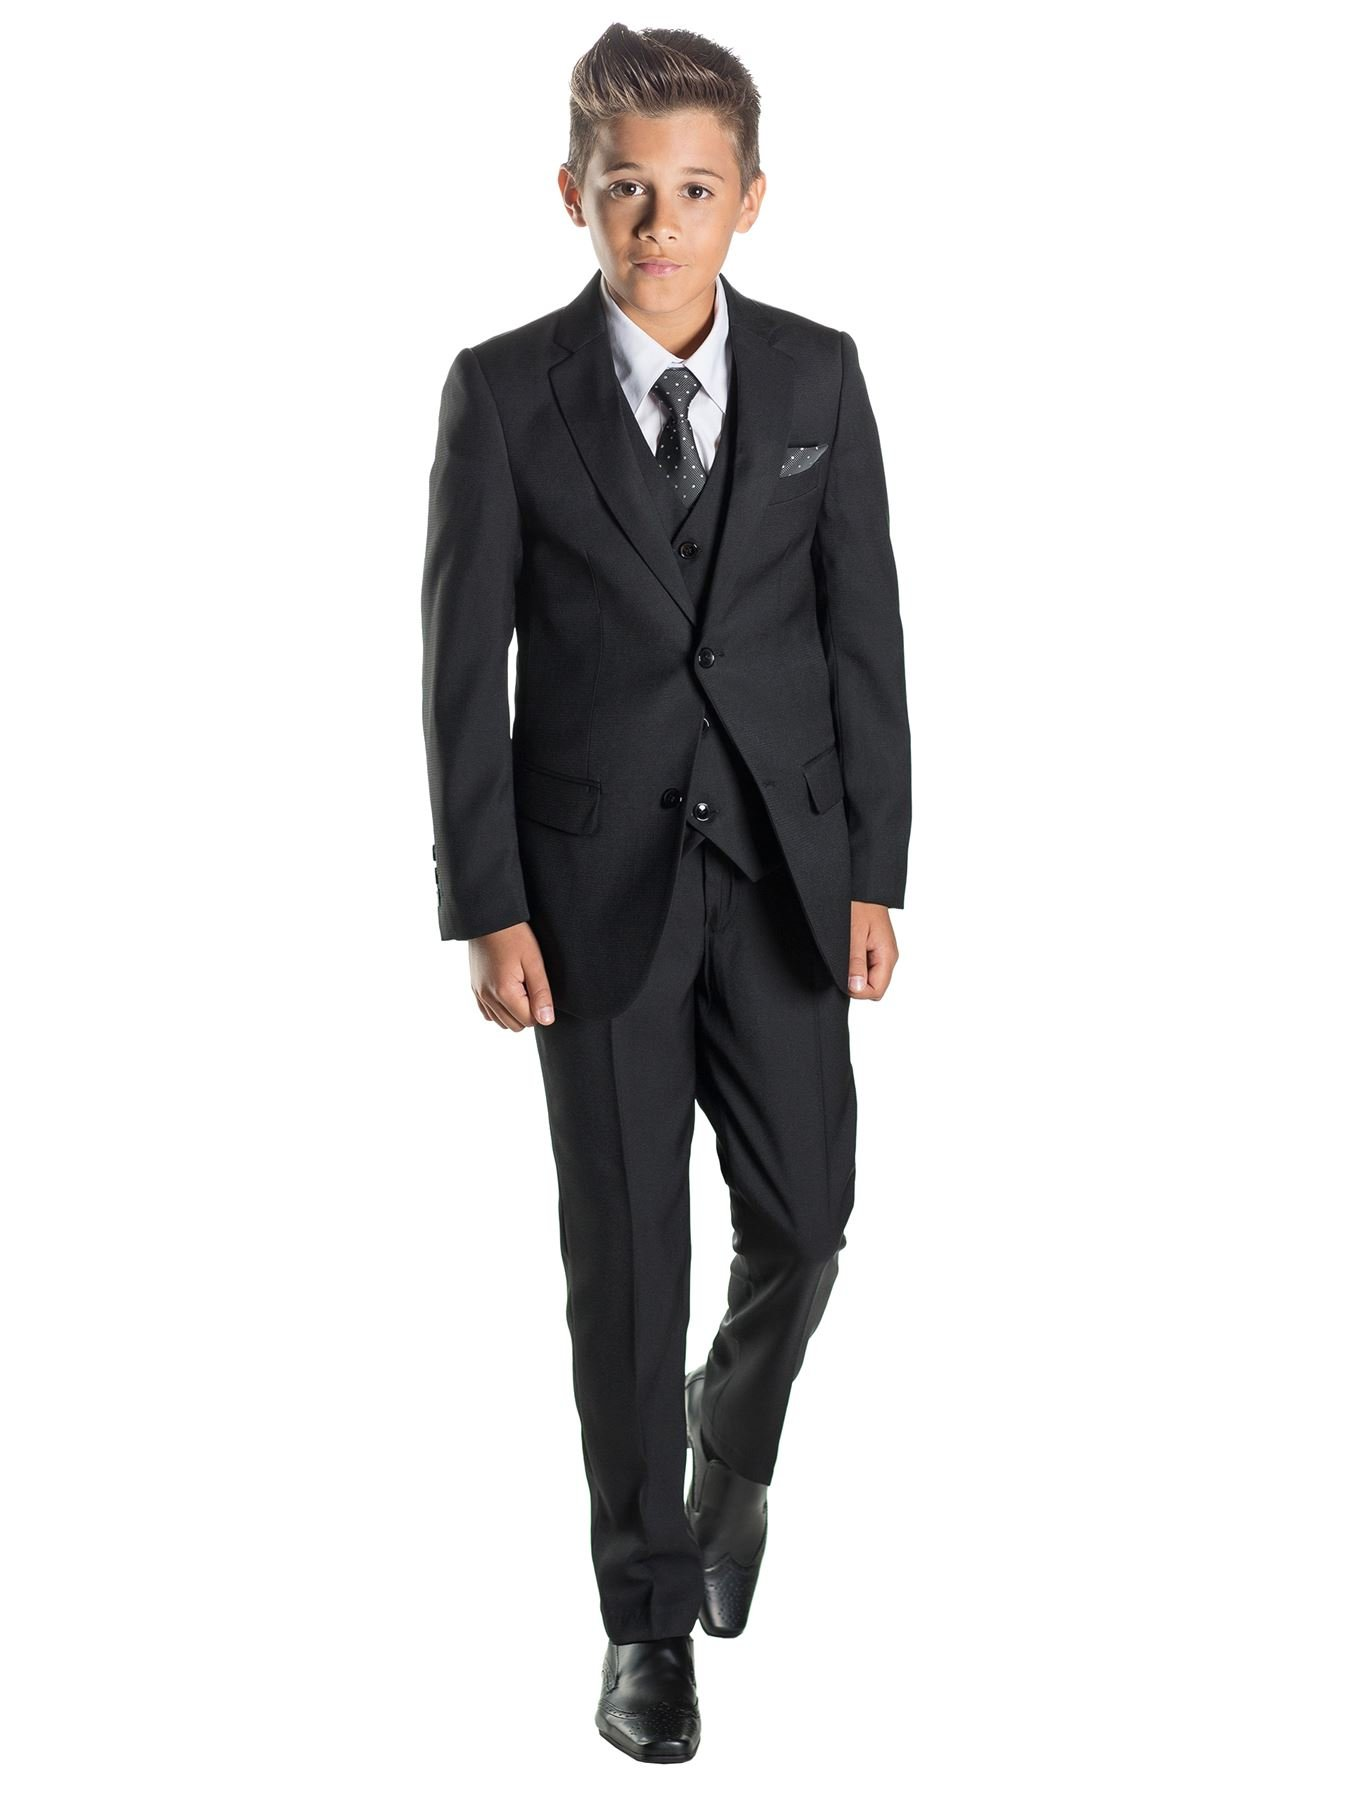 Paisley of London Boys Black Ring Bearer Suit, 16